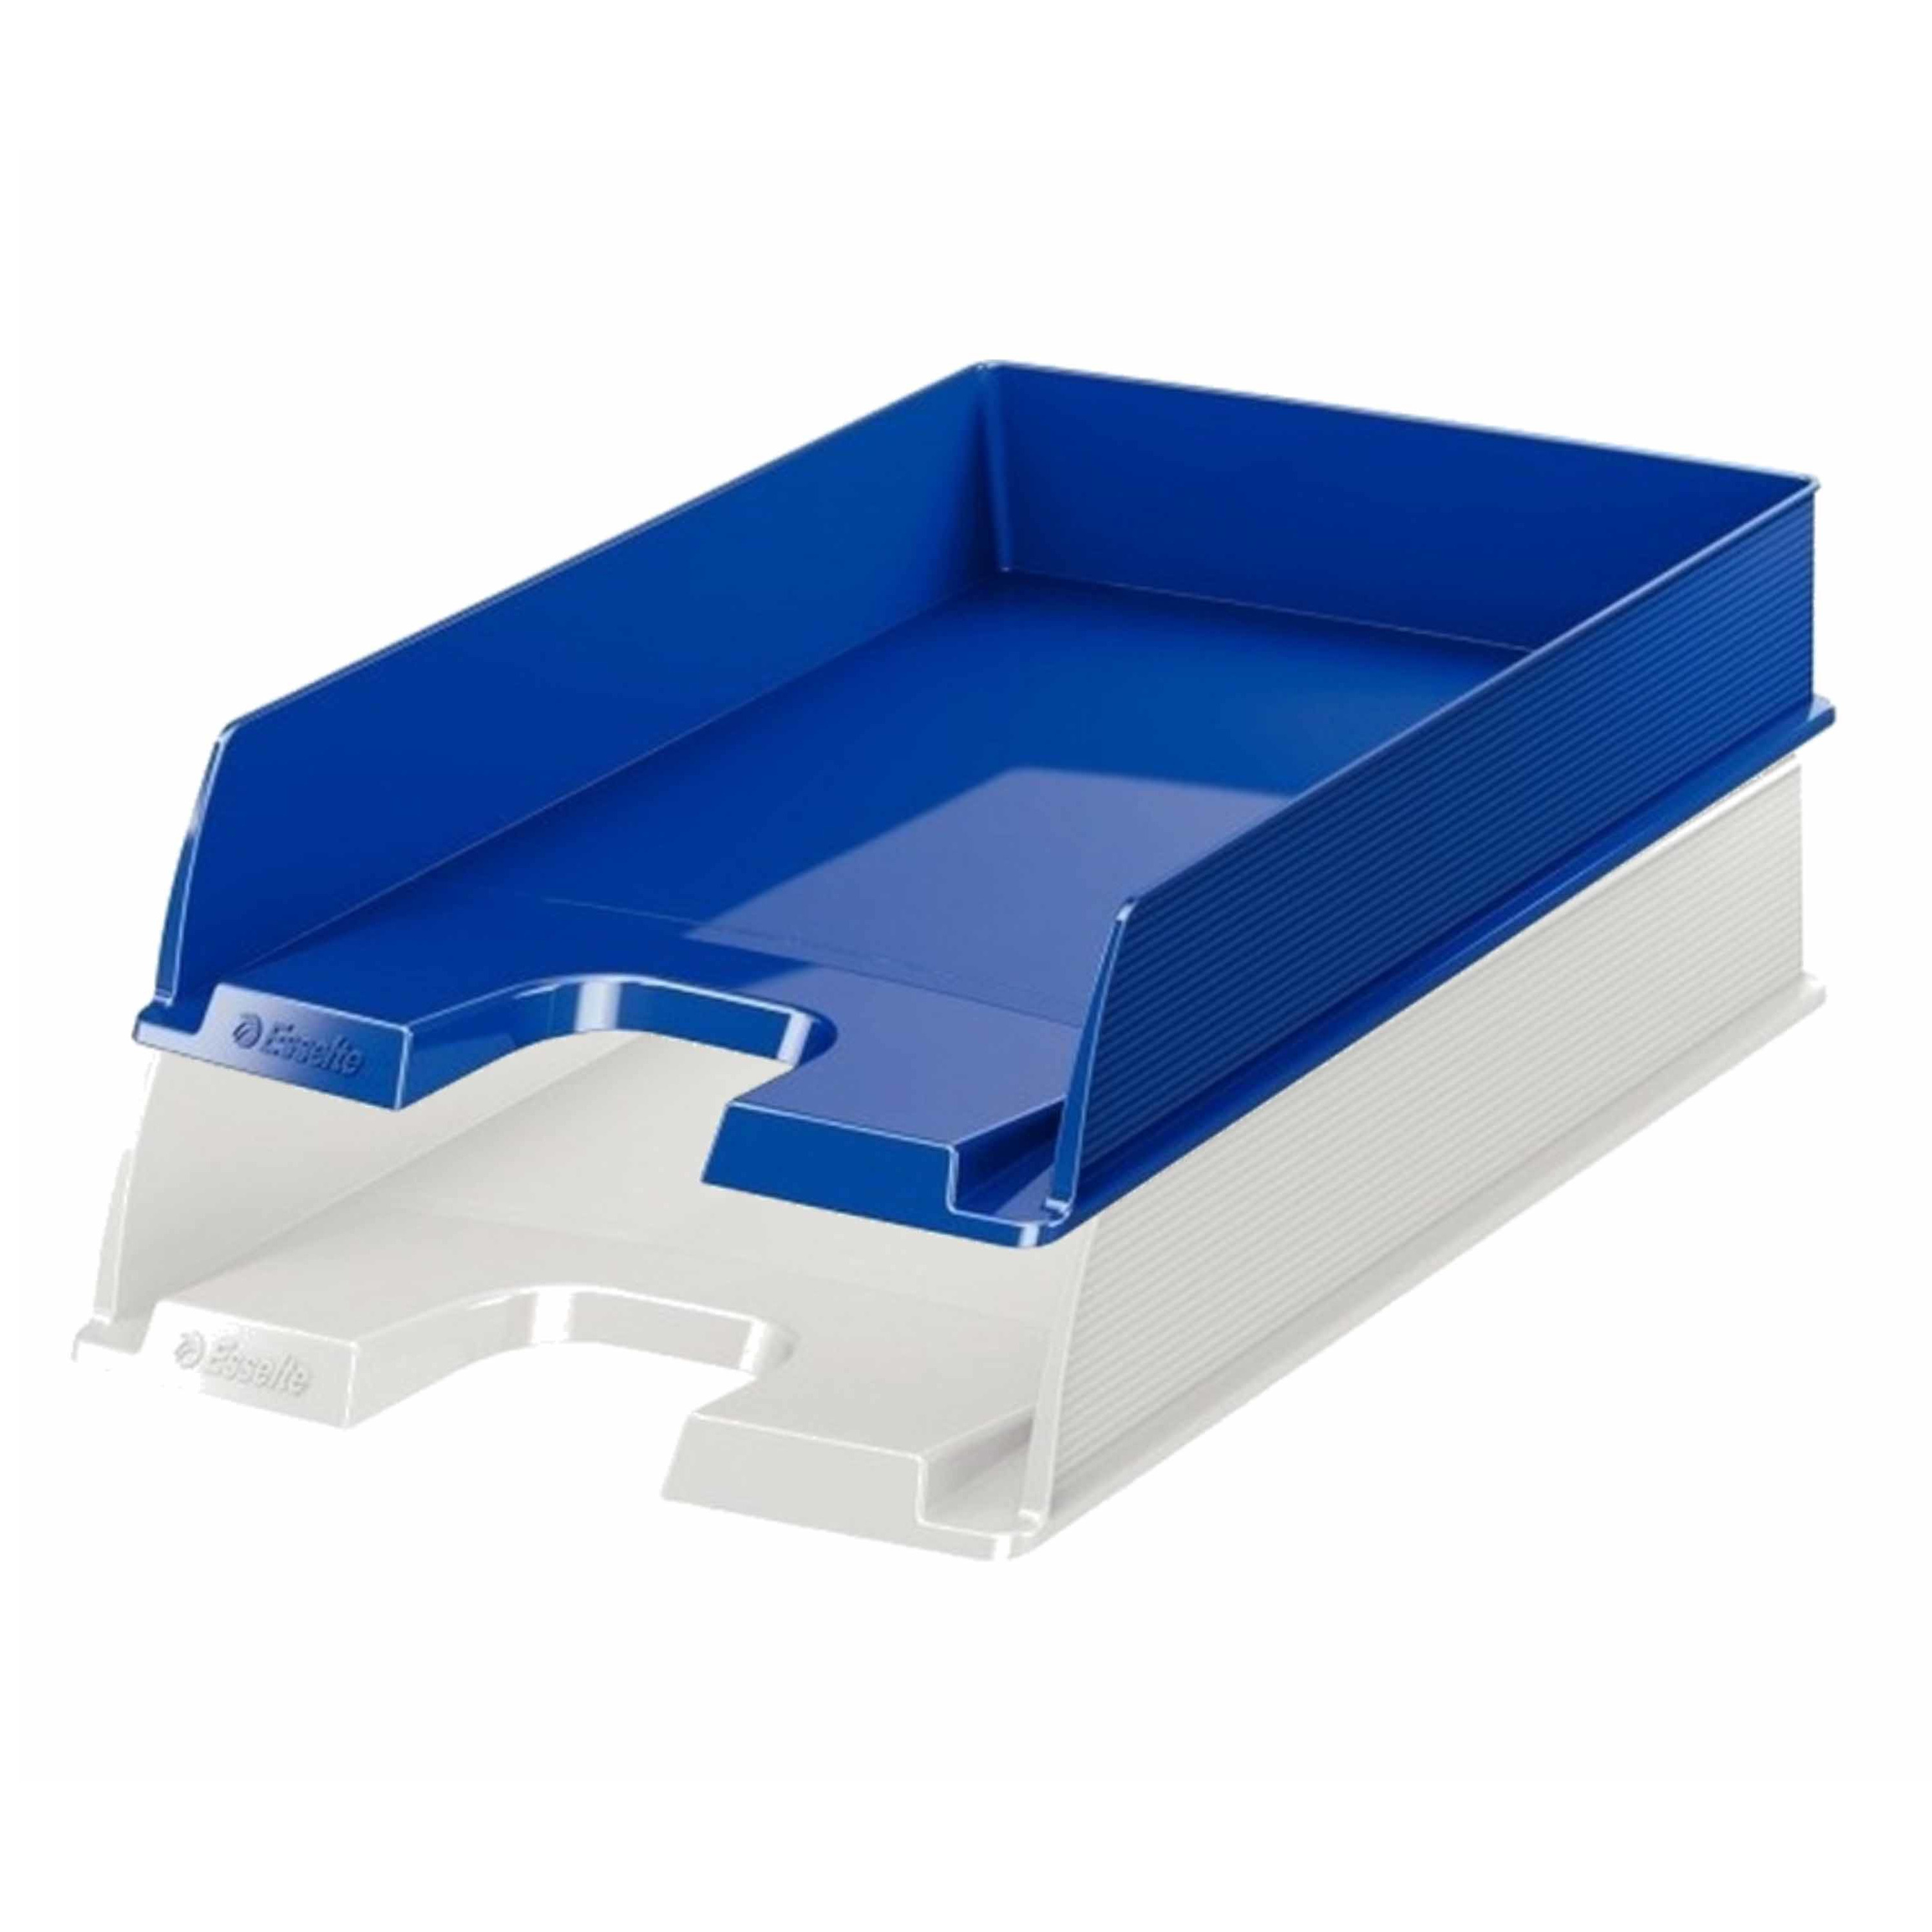 Esselte postbakjejes set van 5x blauw en 5x wit in a4 formaat